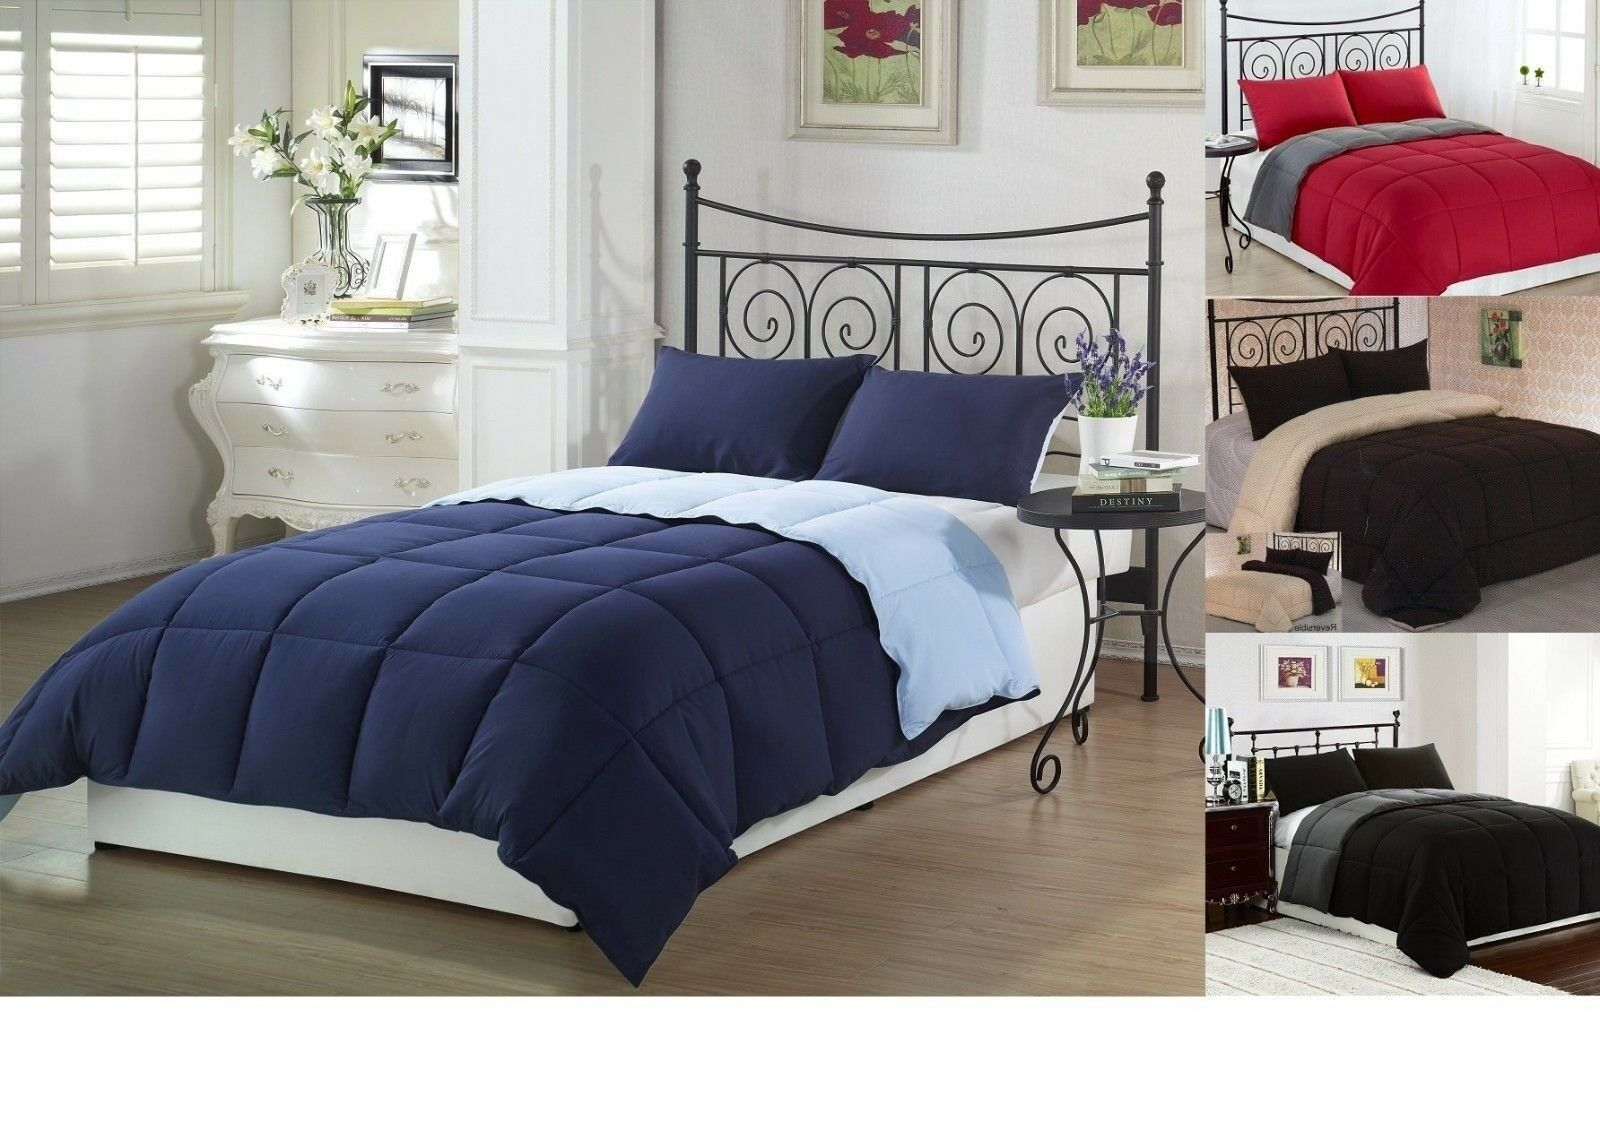 down-alternative-comforter-and-shams-king-queen-full-size-comforters-available